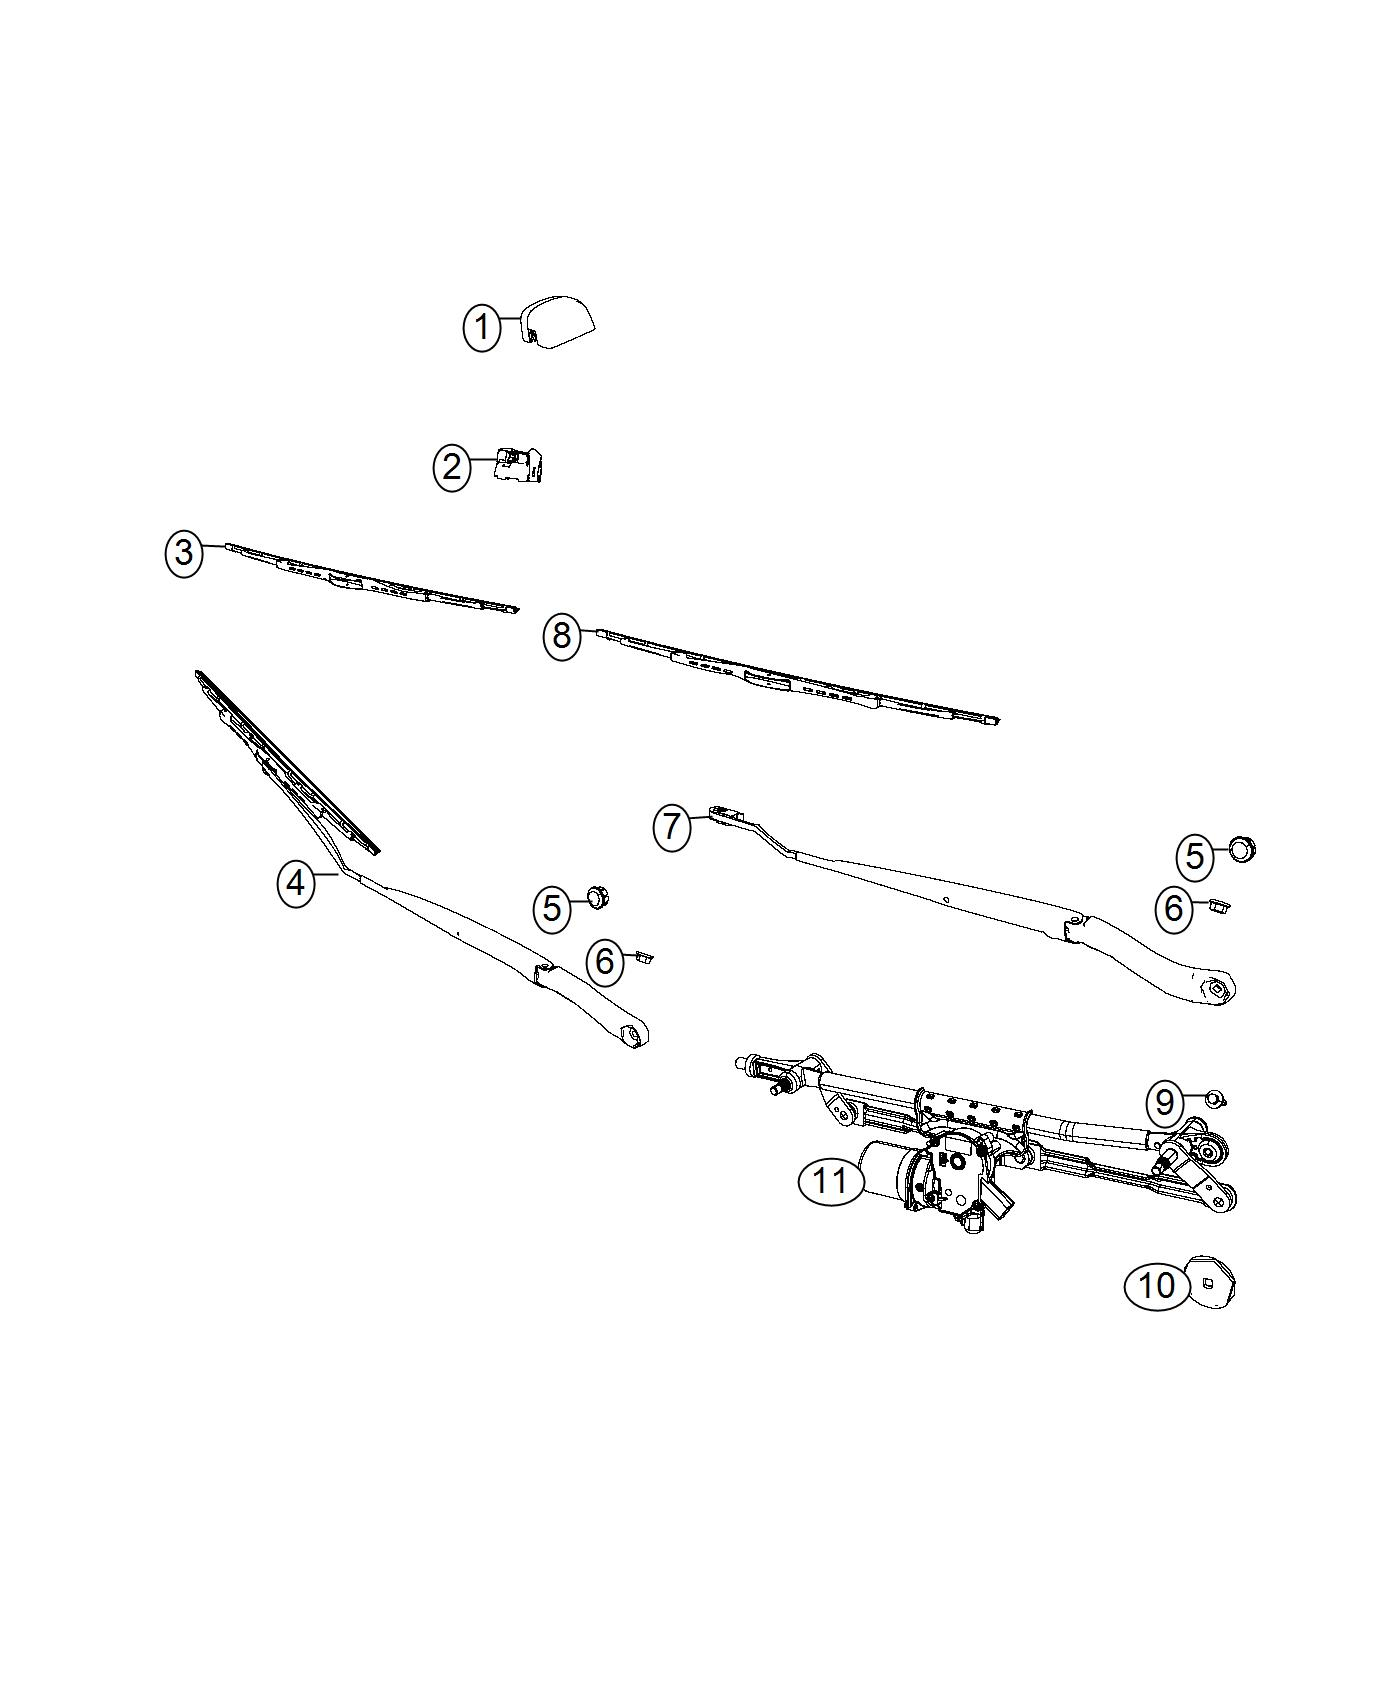 Dodge Grand Caravan Used For Motor And Linkage Windshield Wiper Var Intermittent